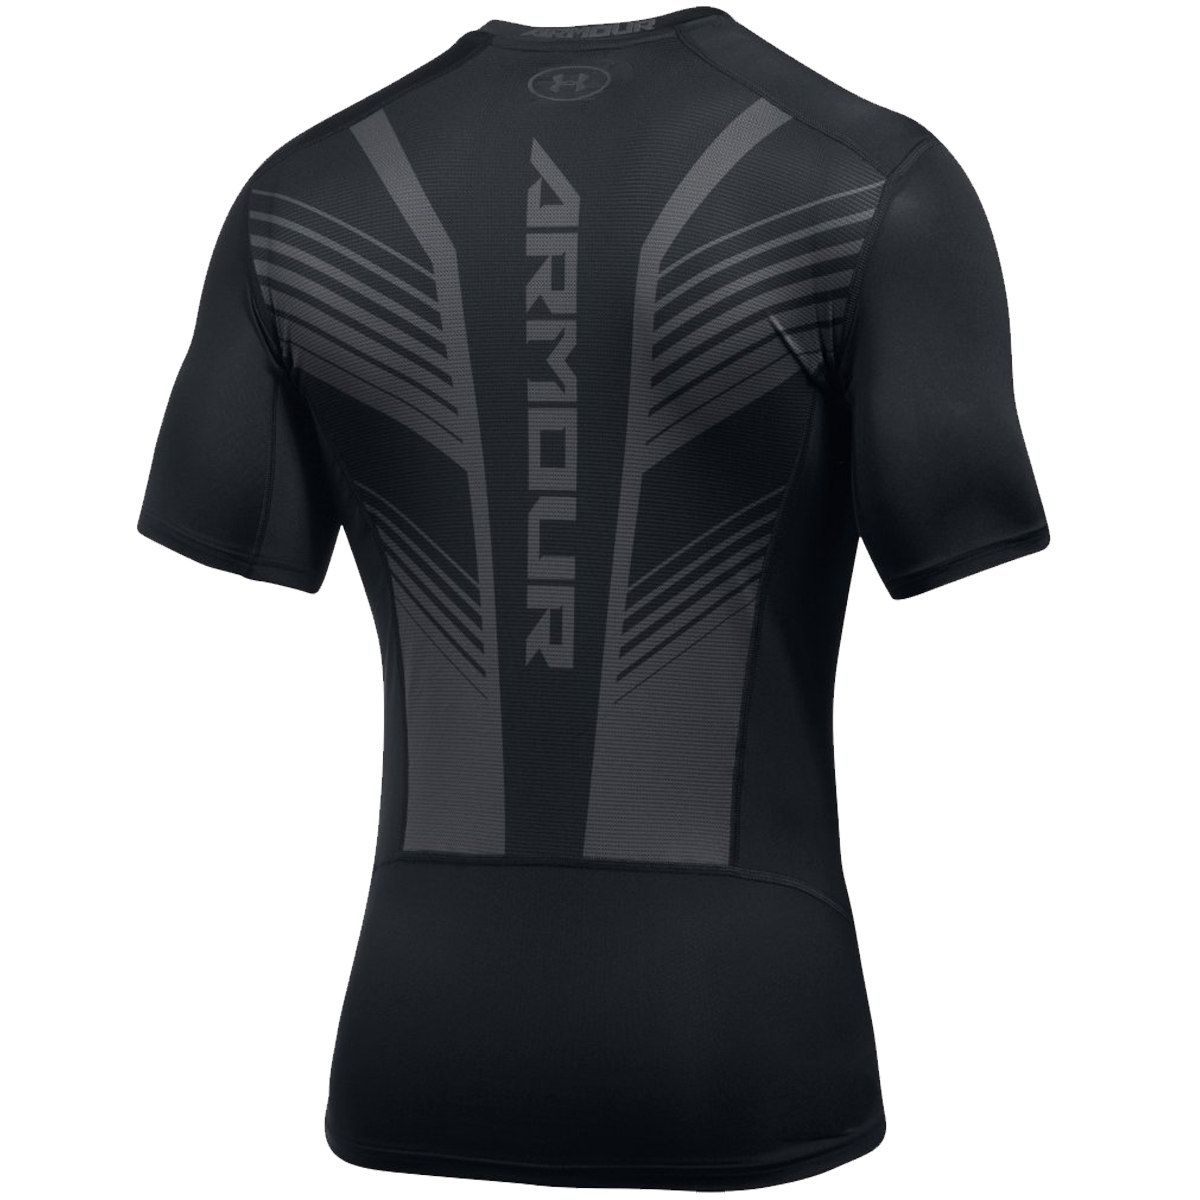 Under Armour Mens HeatGear Supervent 2.0 Compression Baselayer Top 28/% OFF RRP